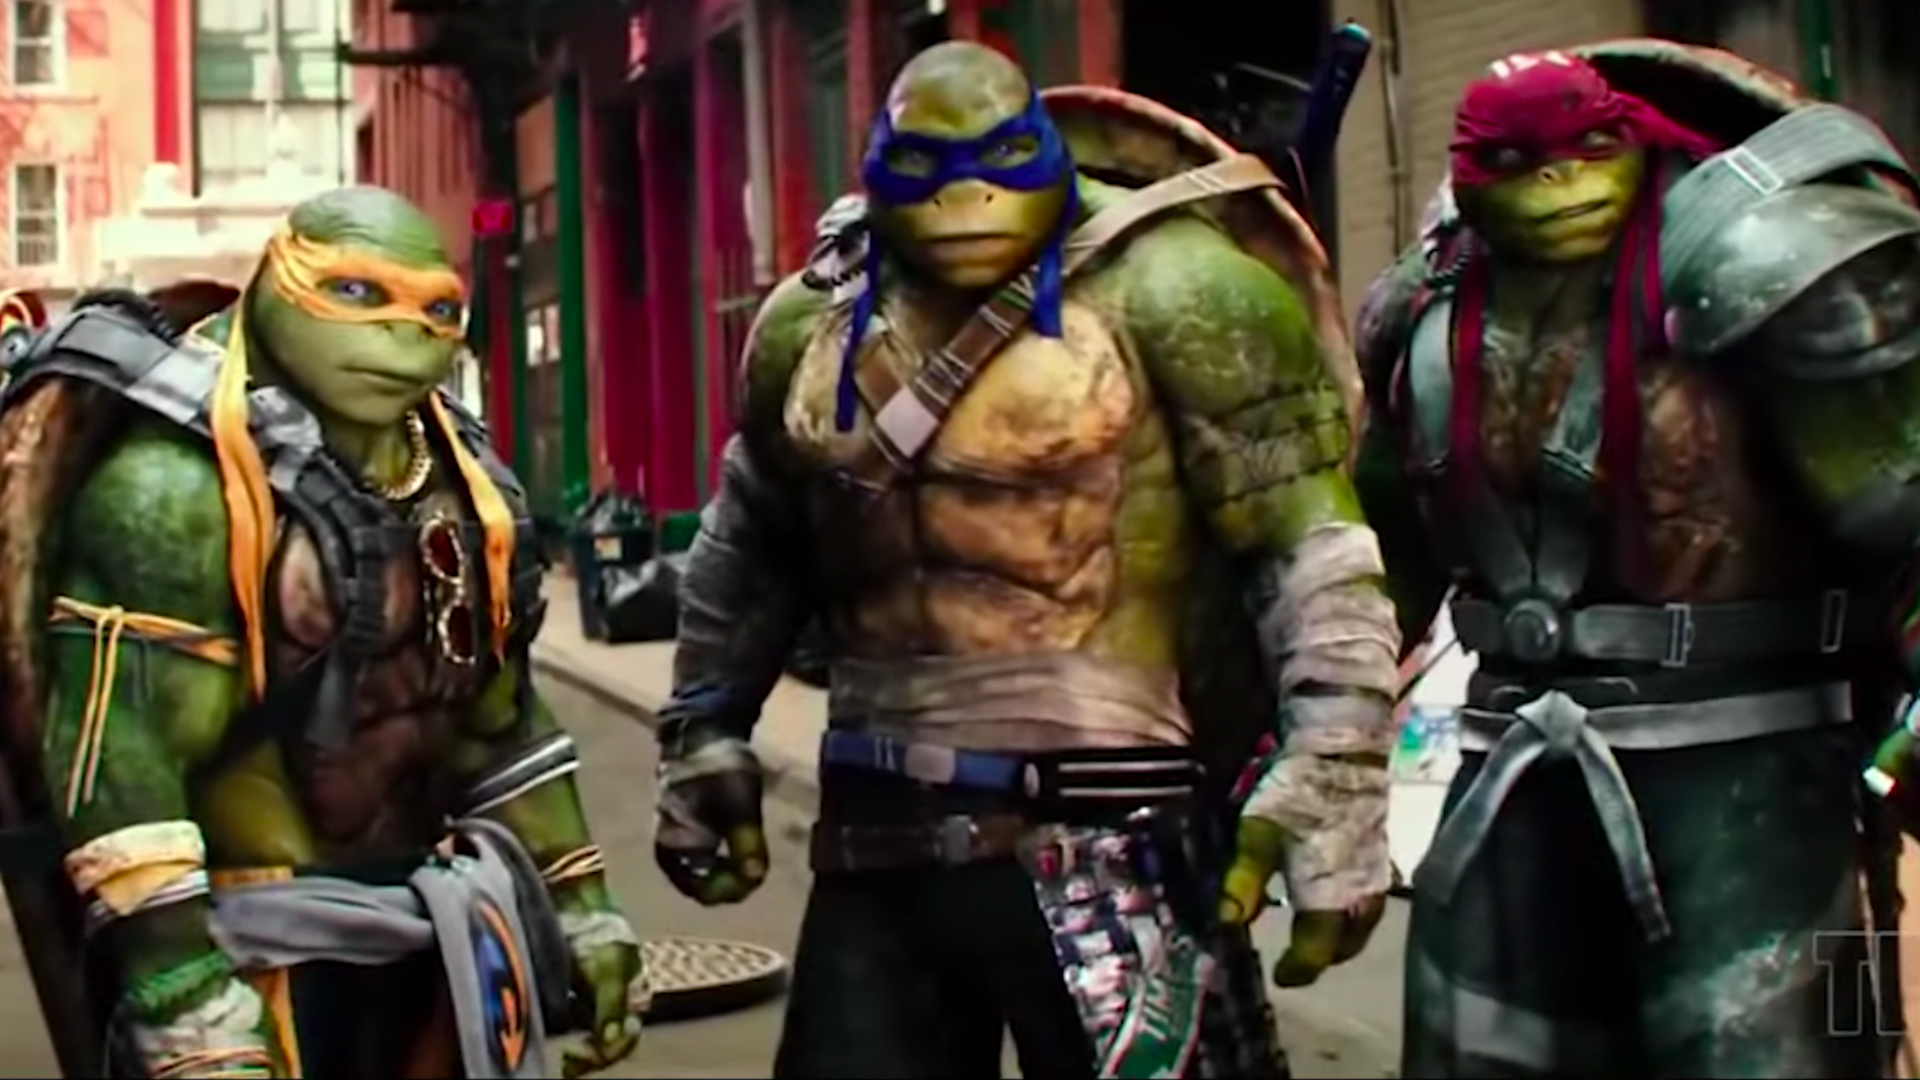 Tmnt Out Of The Shadows Footage Recut To Original Animated Series